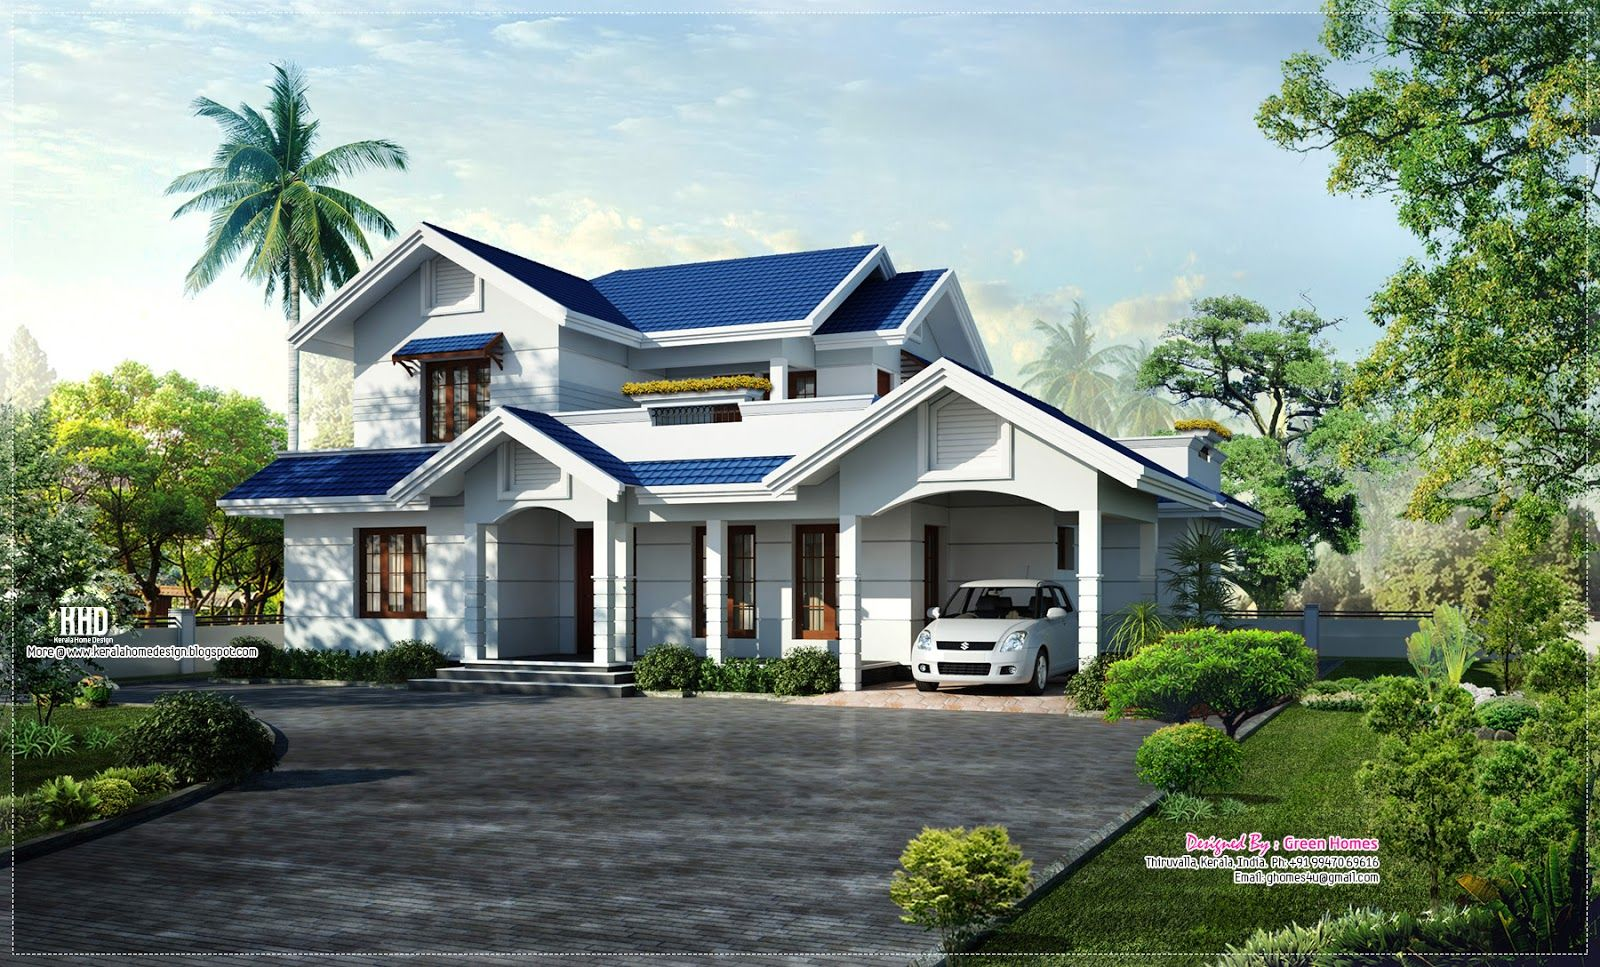 House Roof Kerala House Design Beautiful Roofs House Design Pictures